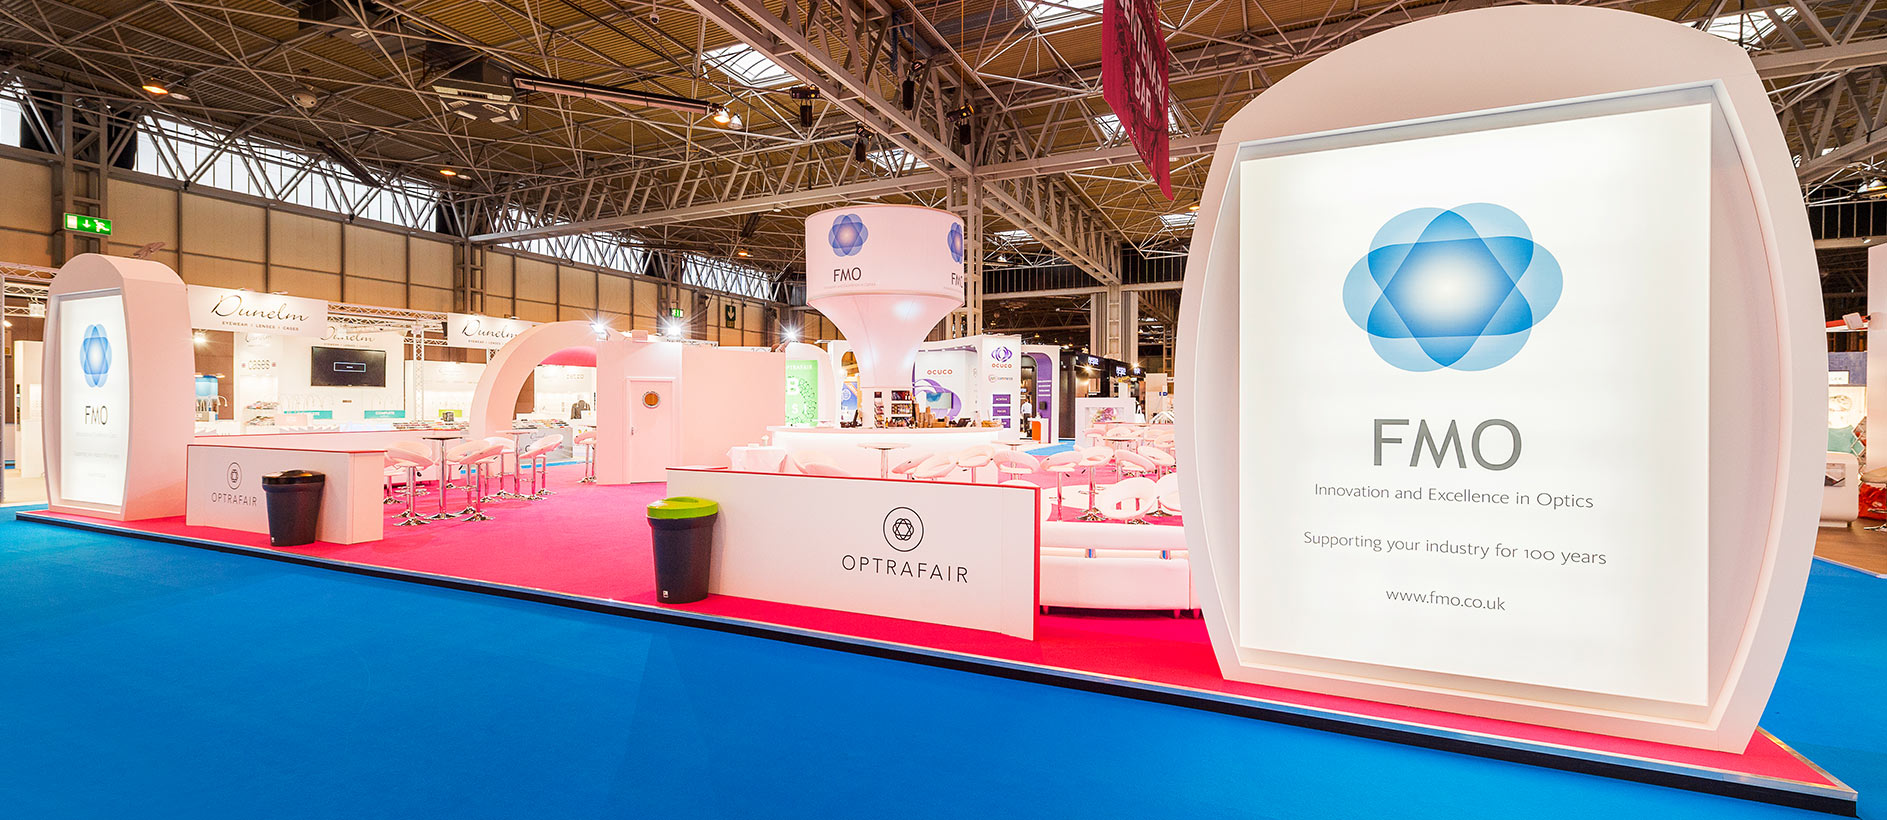 Custom trade show for FMO at Optrafair